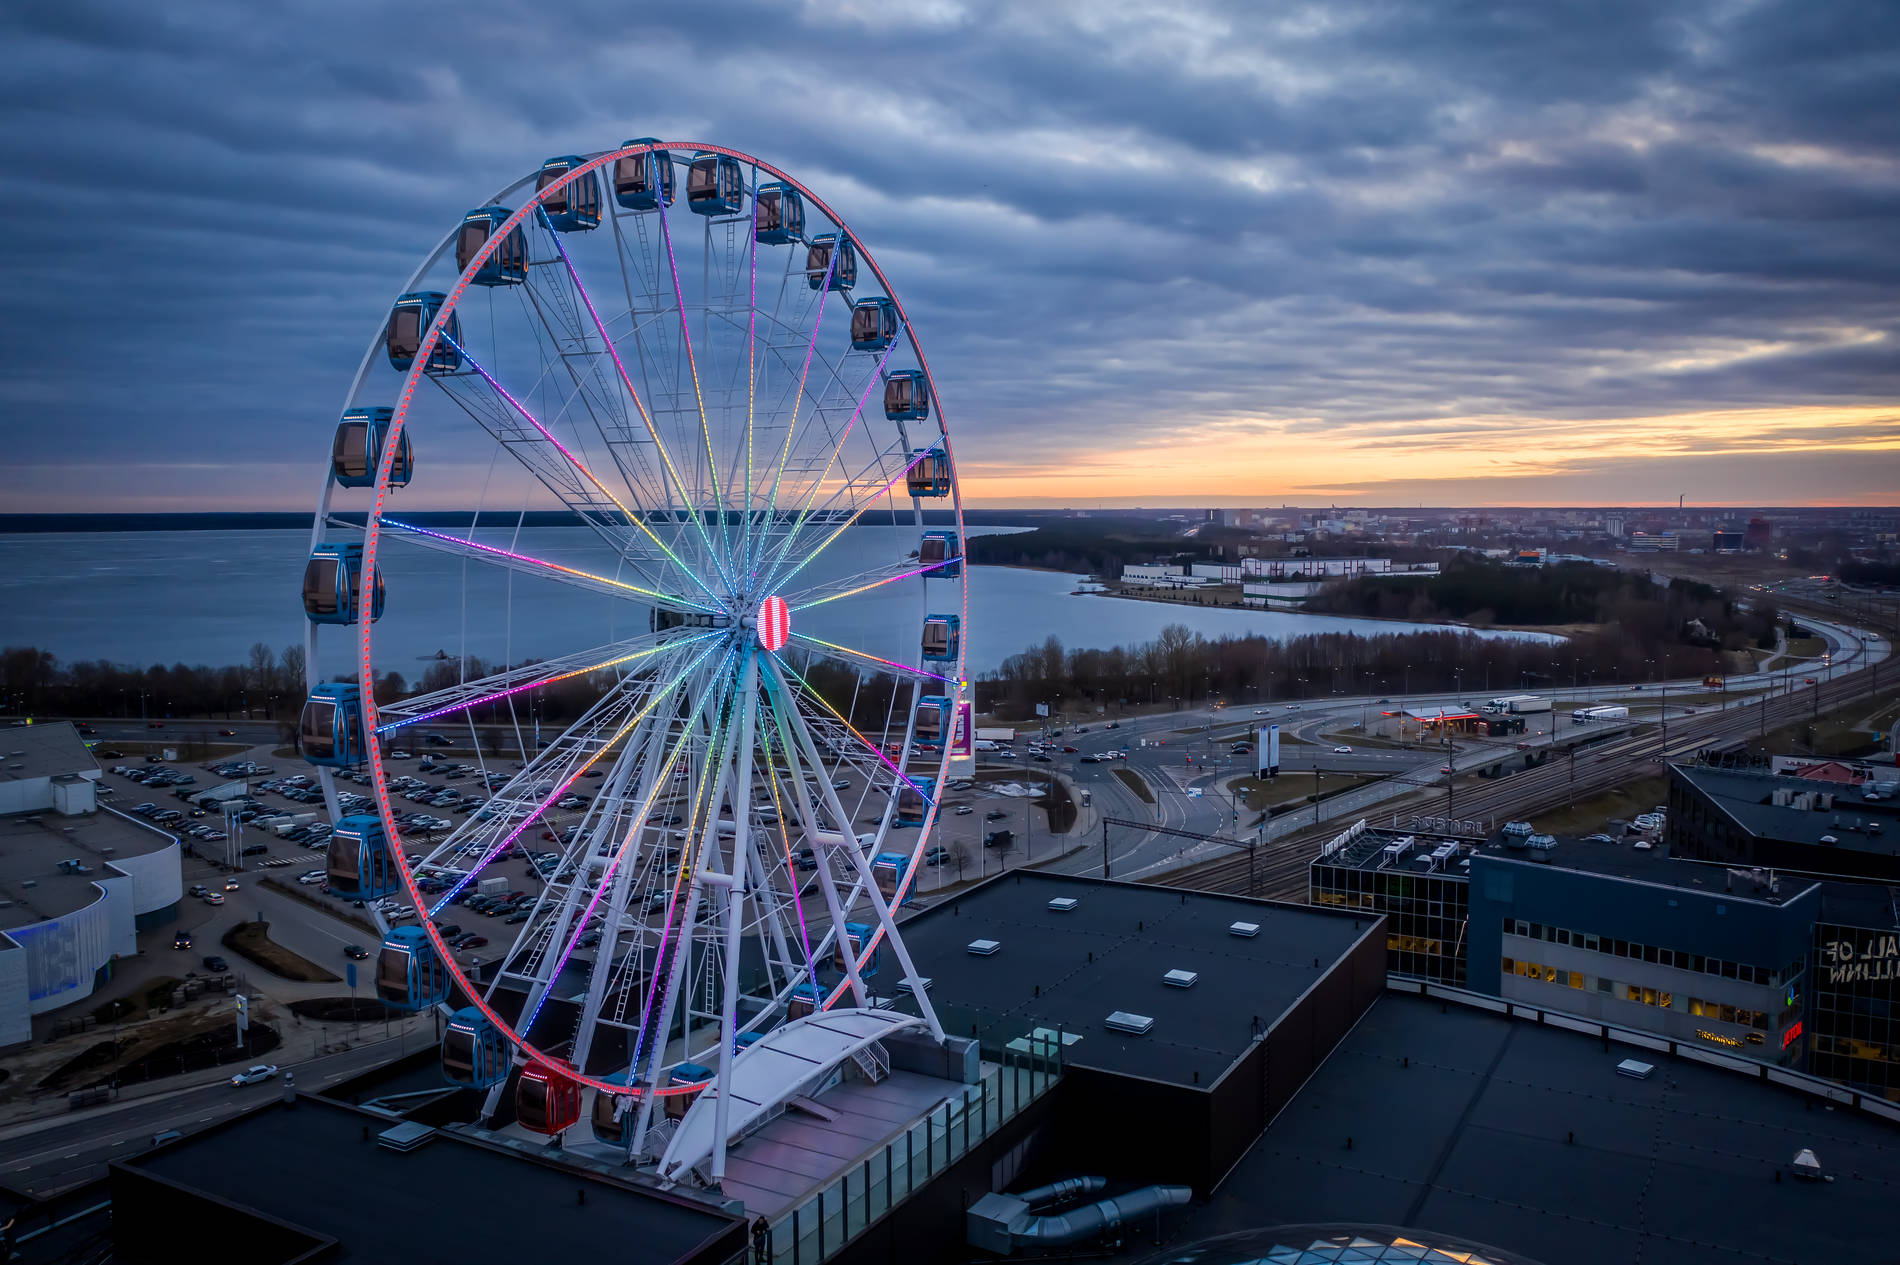 Skywheel of Tallinn in Estonia